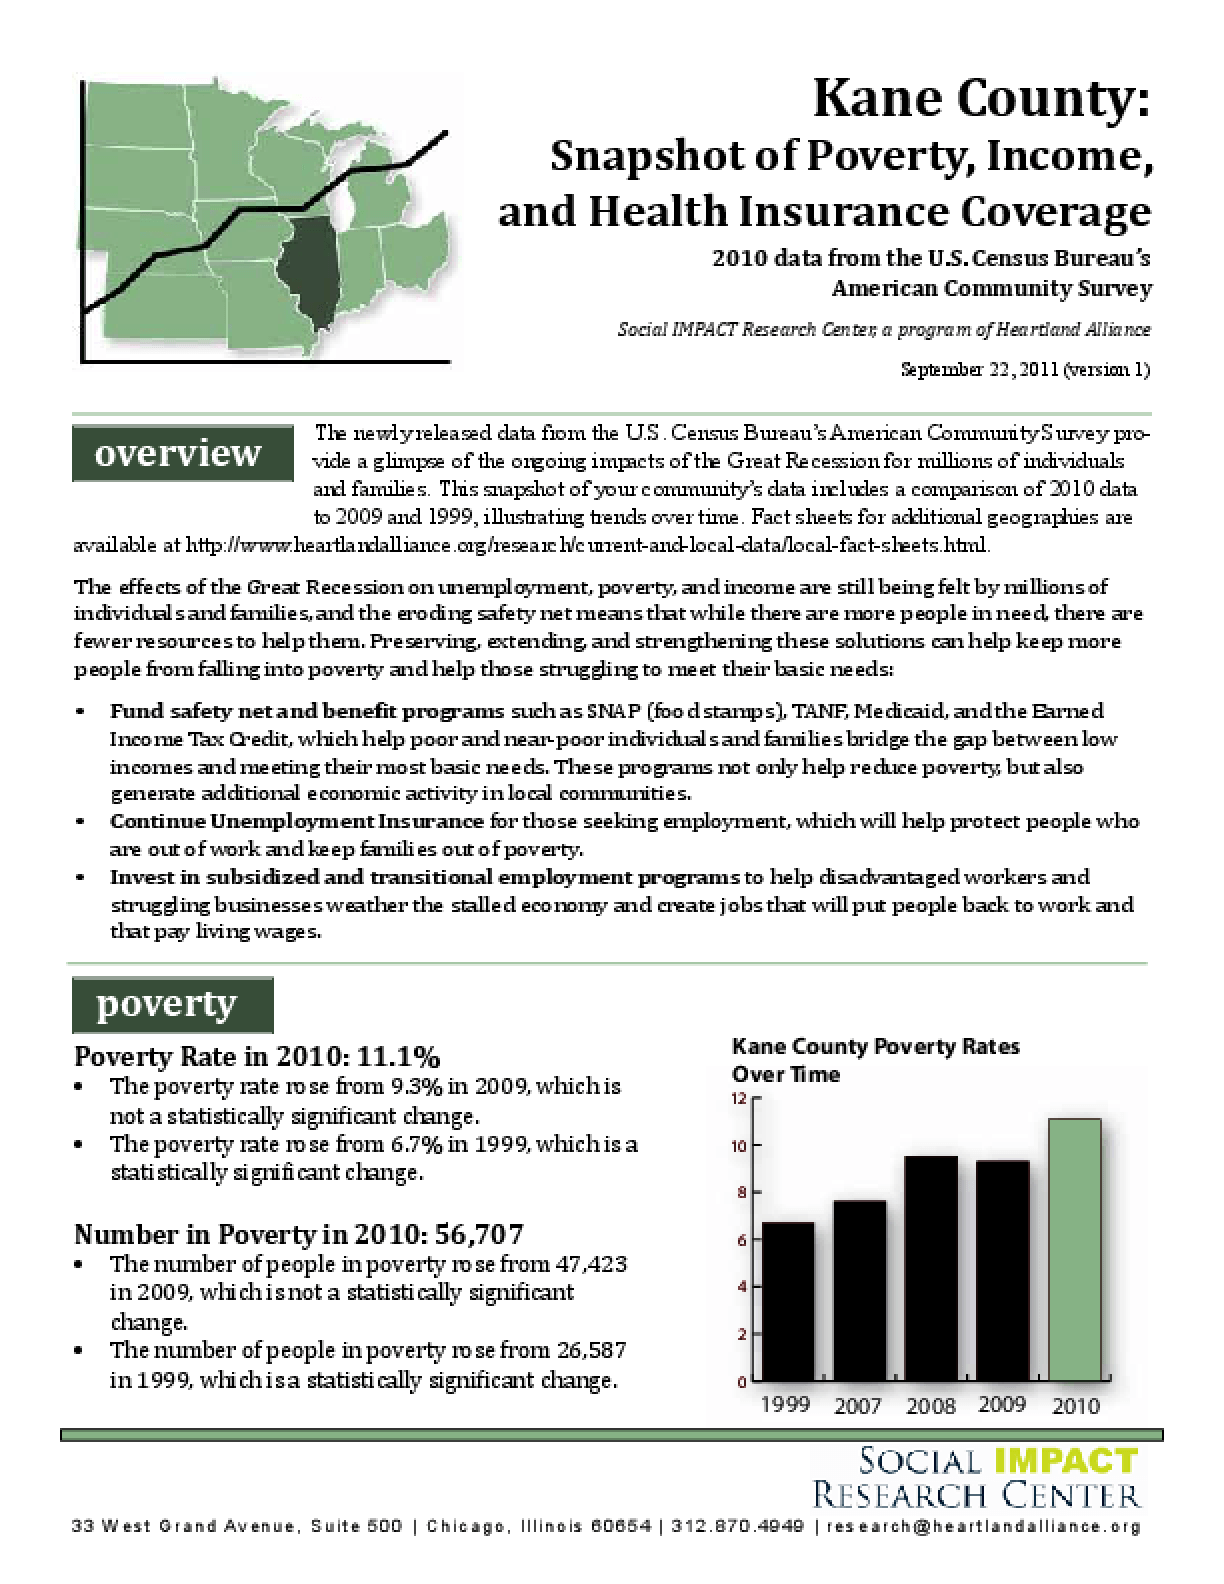 Kane County: Snapshot of Poverty, Income, and Health Insurance Coverage